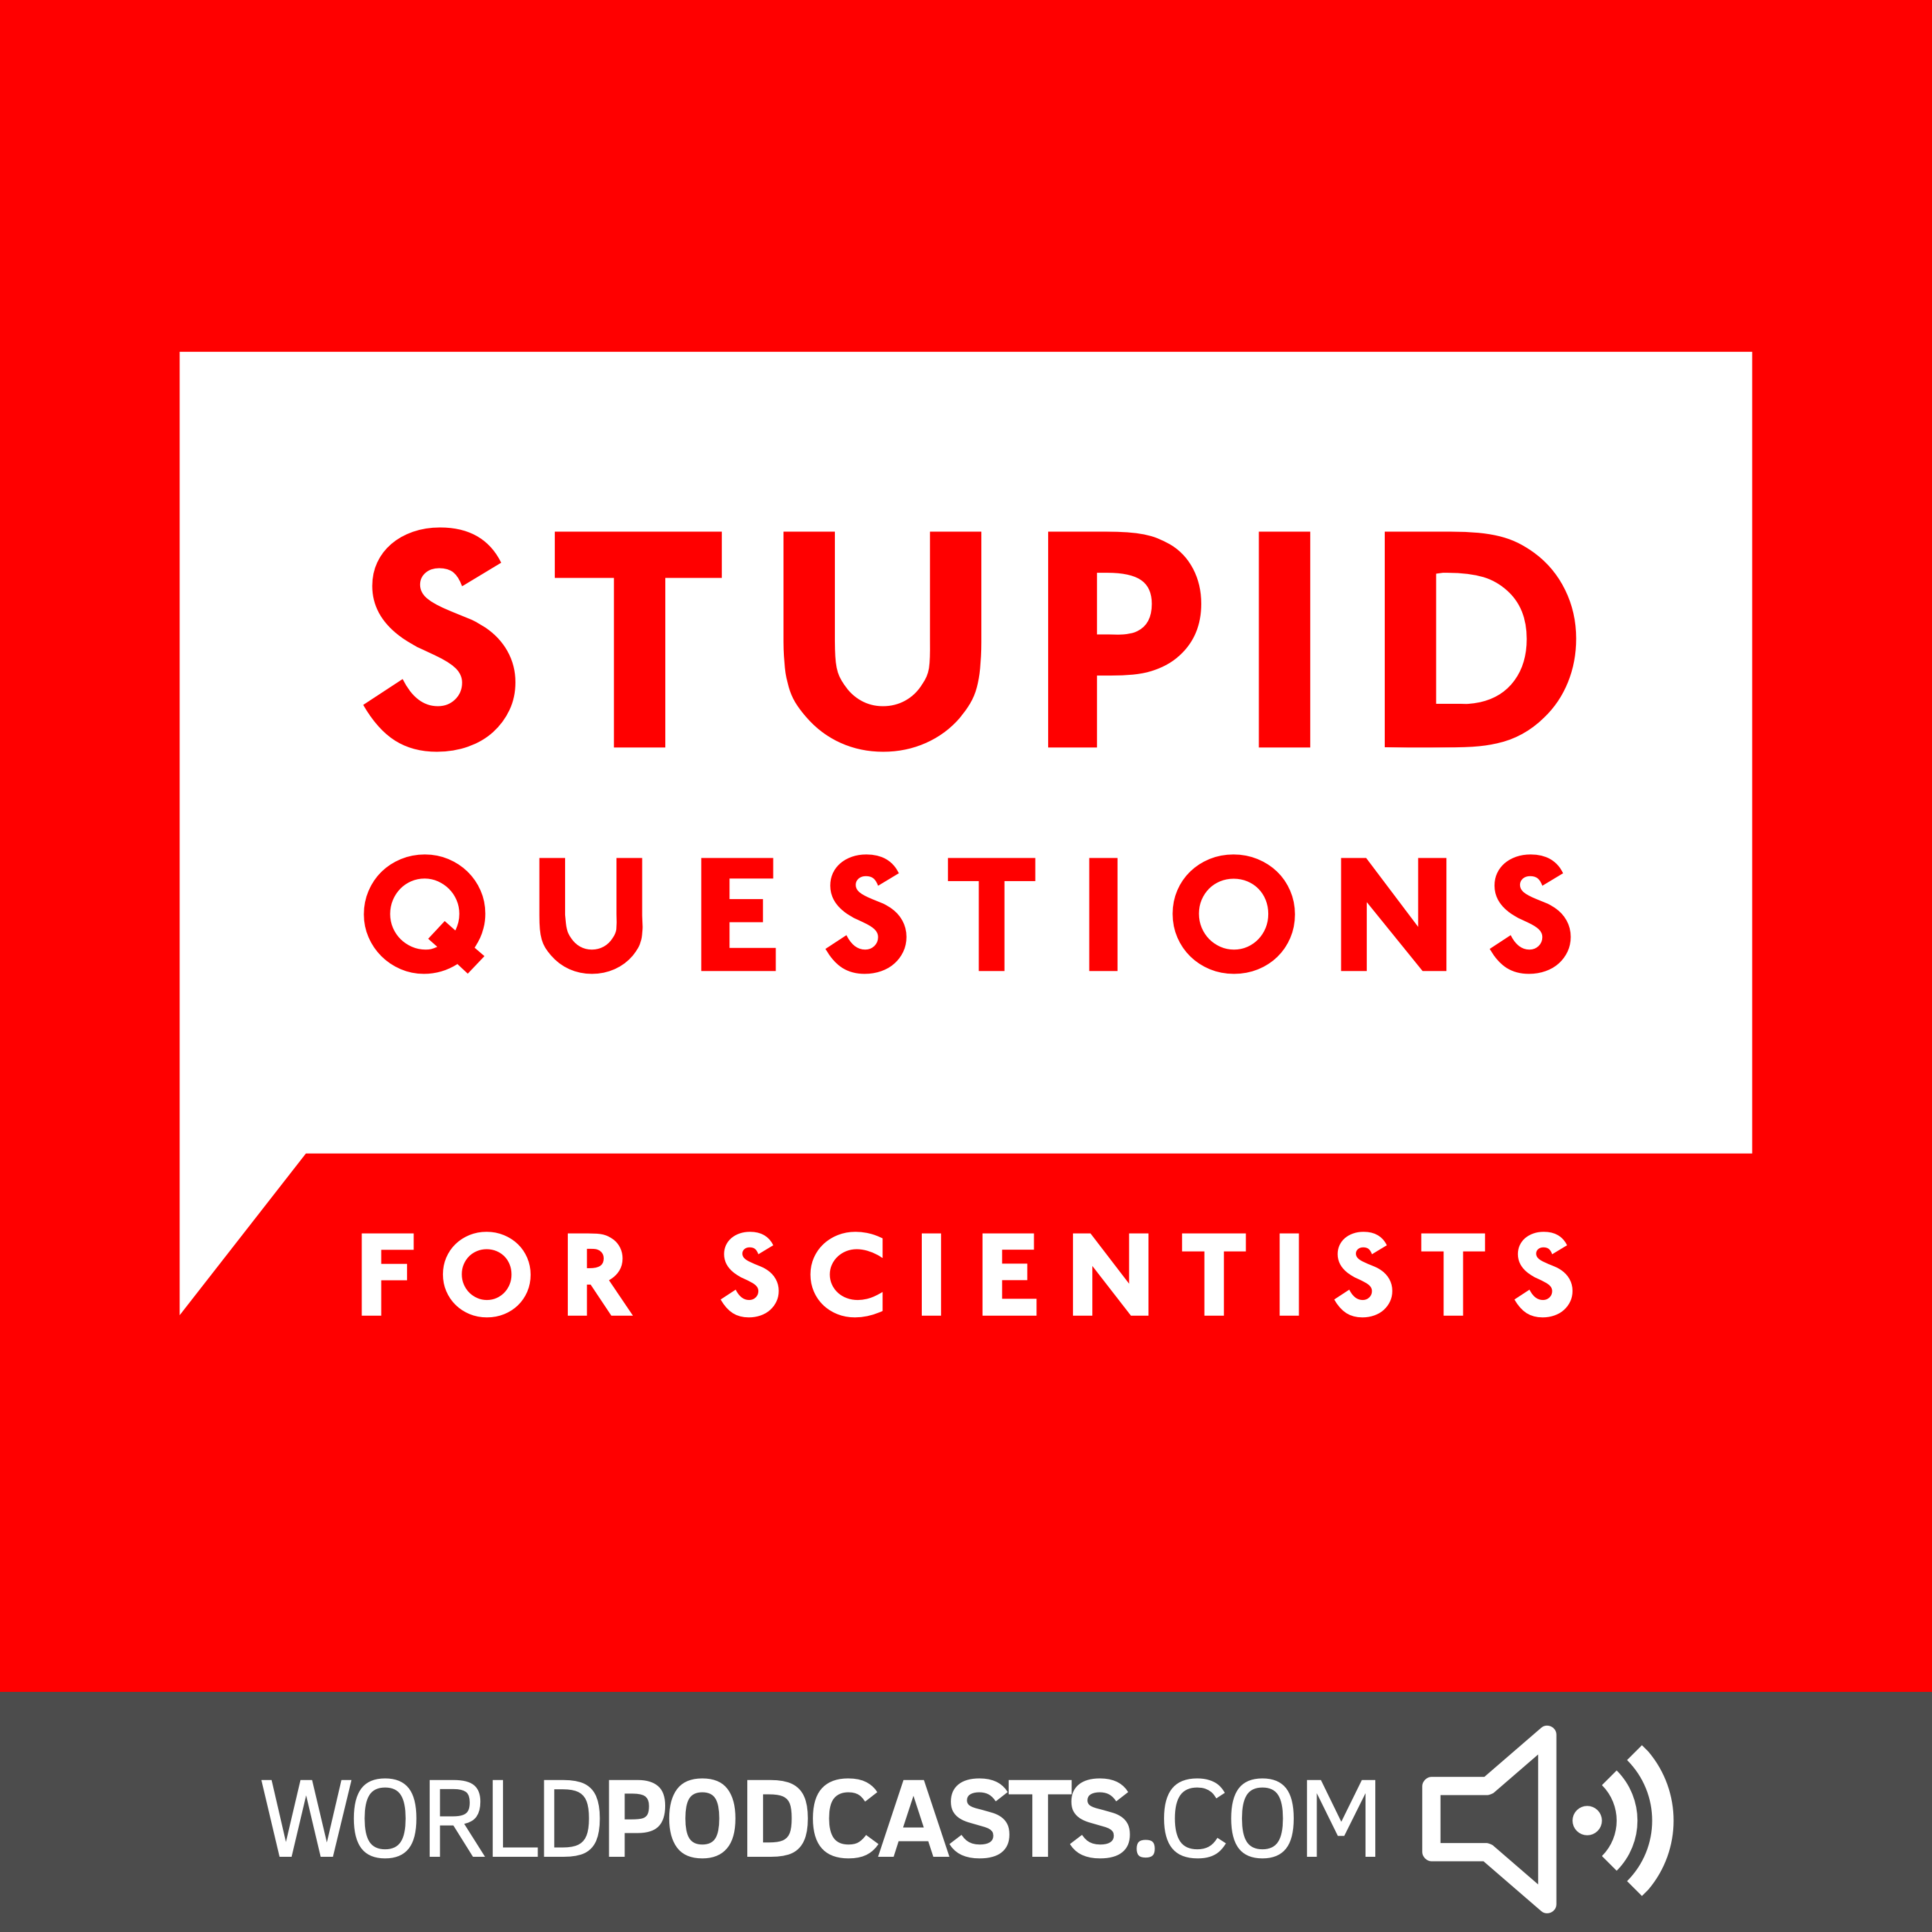 Stupid Questions for Scientists